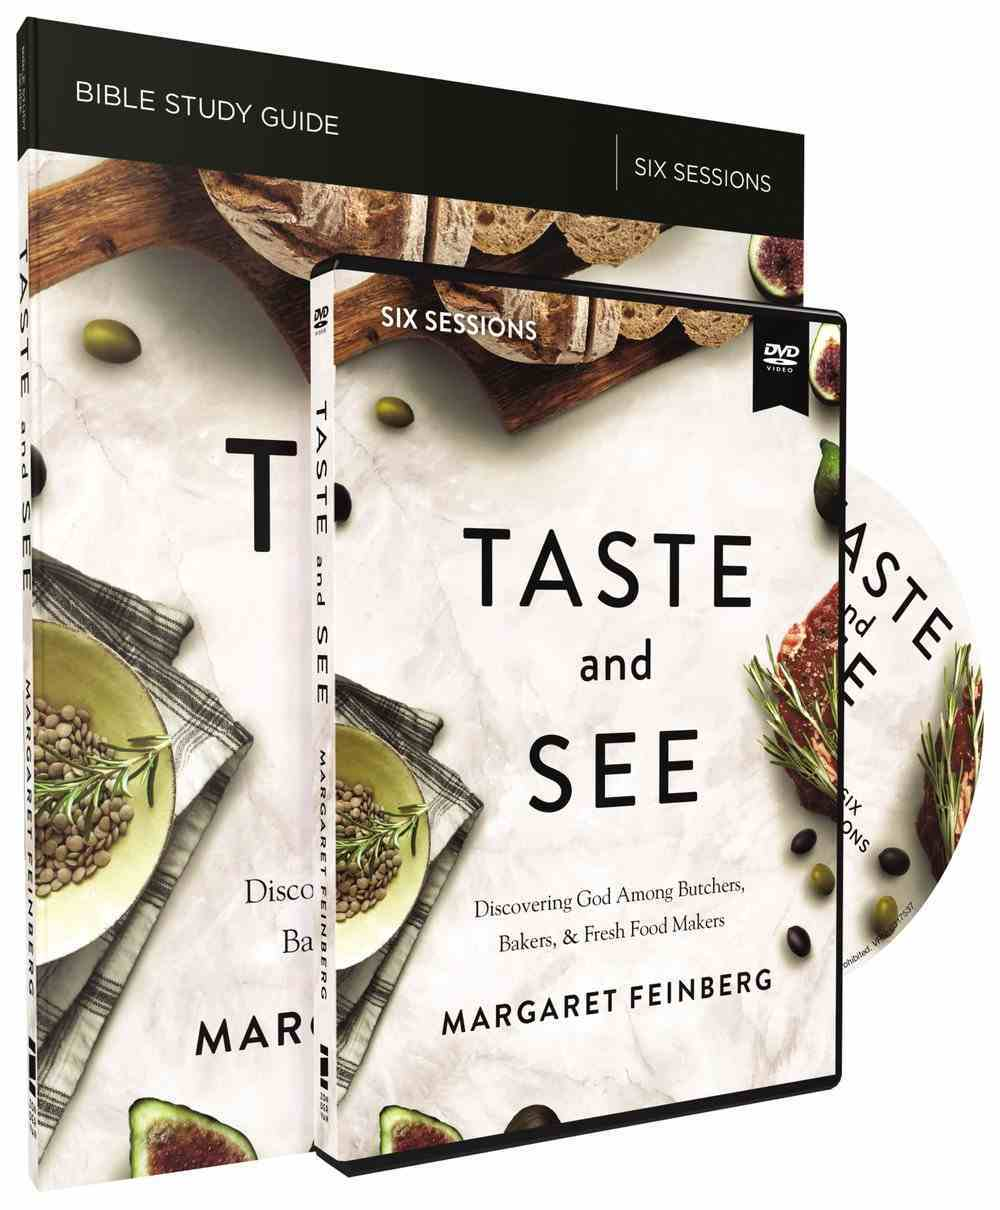 Taste and See: Savor God. Relish Friendship. Celebrate Life. 6 Sessions (Study Guide With Dvd) Pack